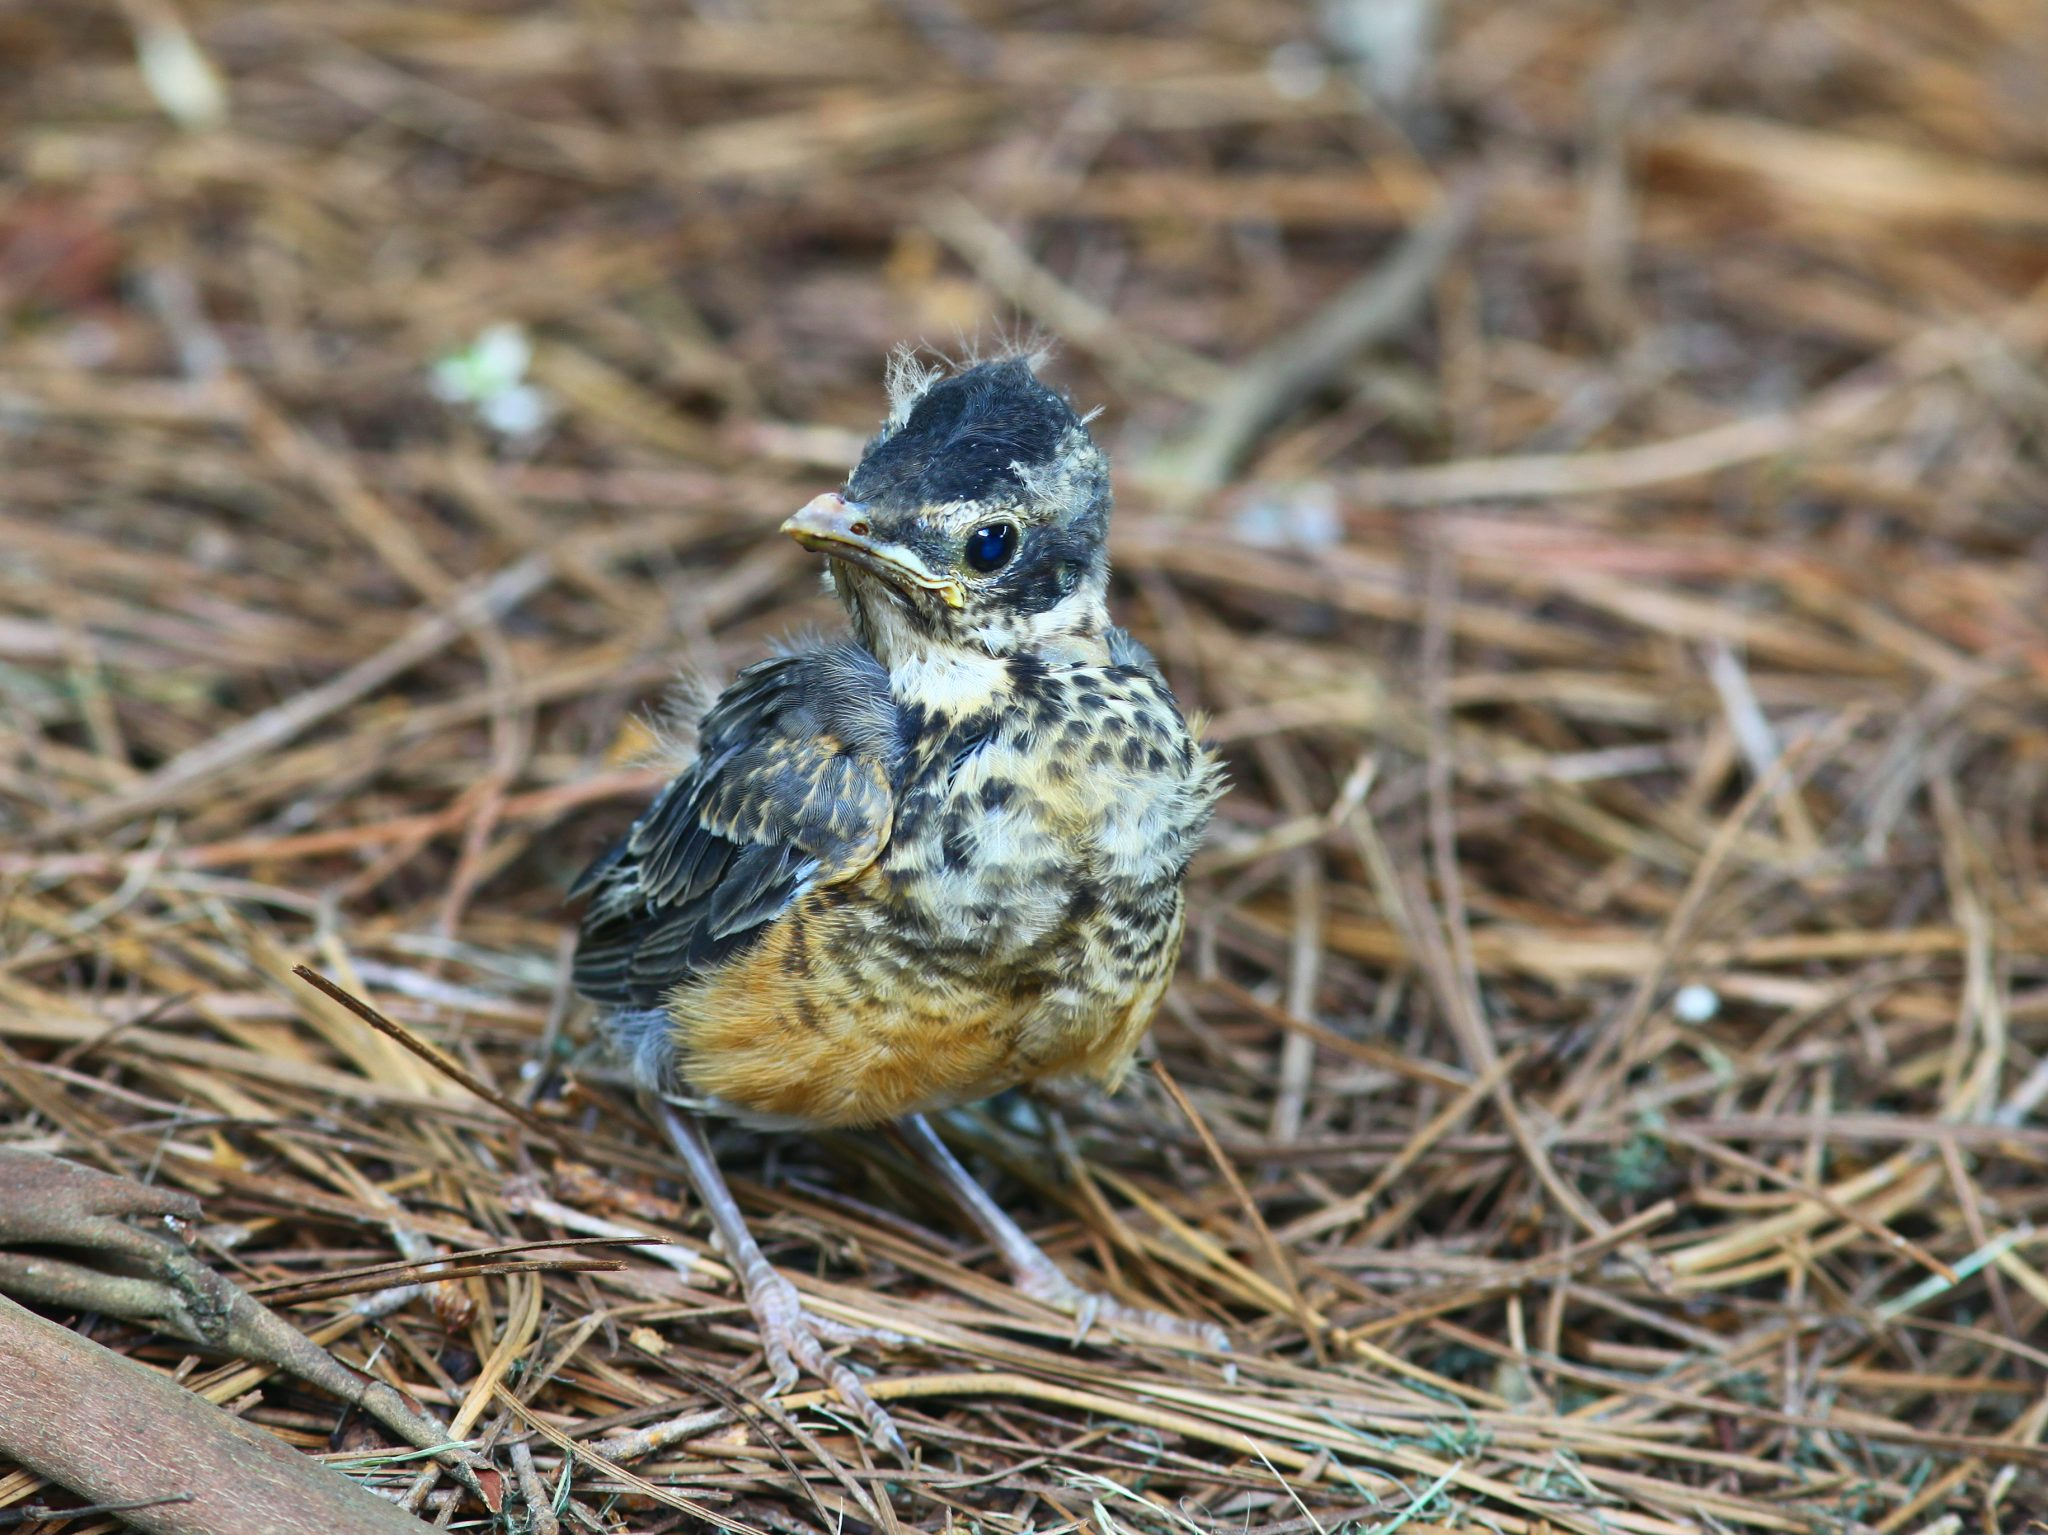 How to care for a baby bird